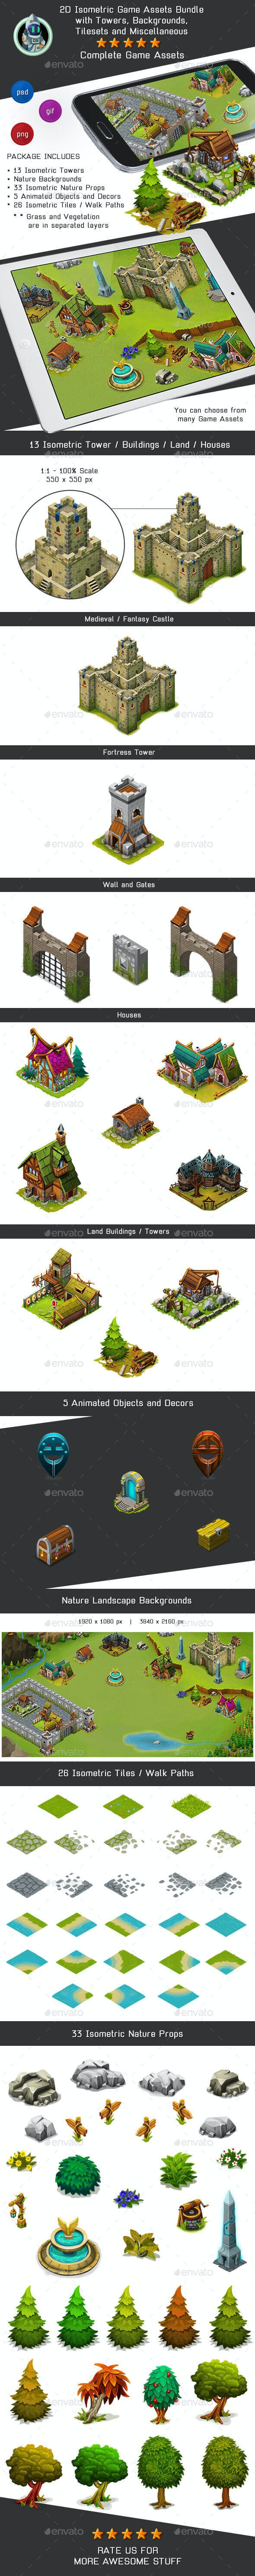 Isometric Game Kit 2 of 3 - Towers, Background, Tilesets & more - Game Kits Game Assets